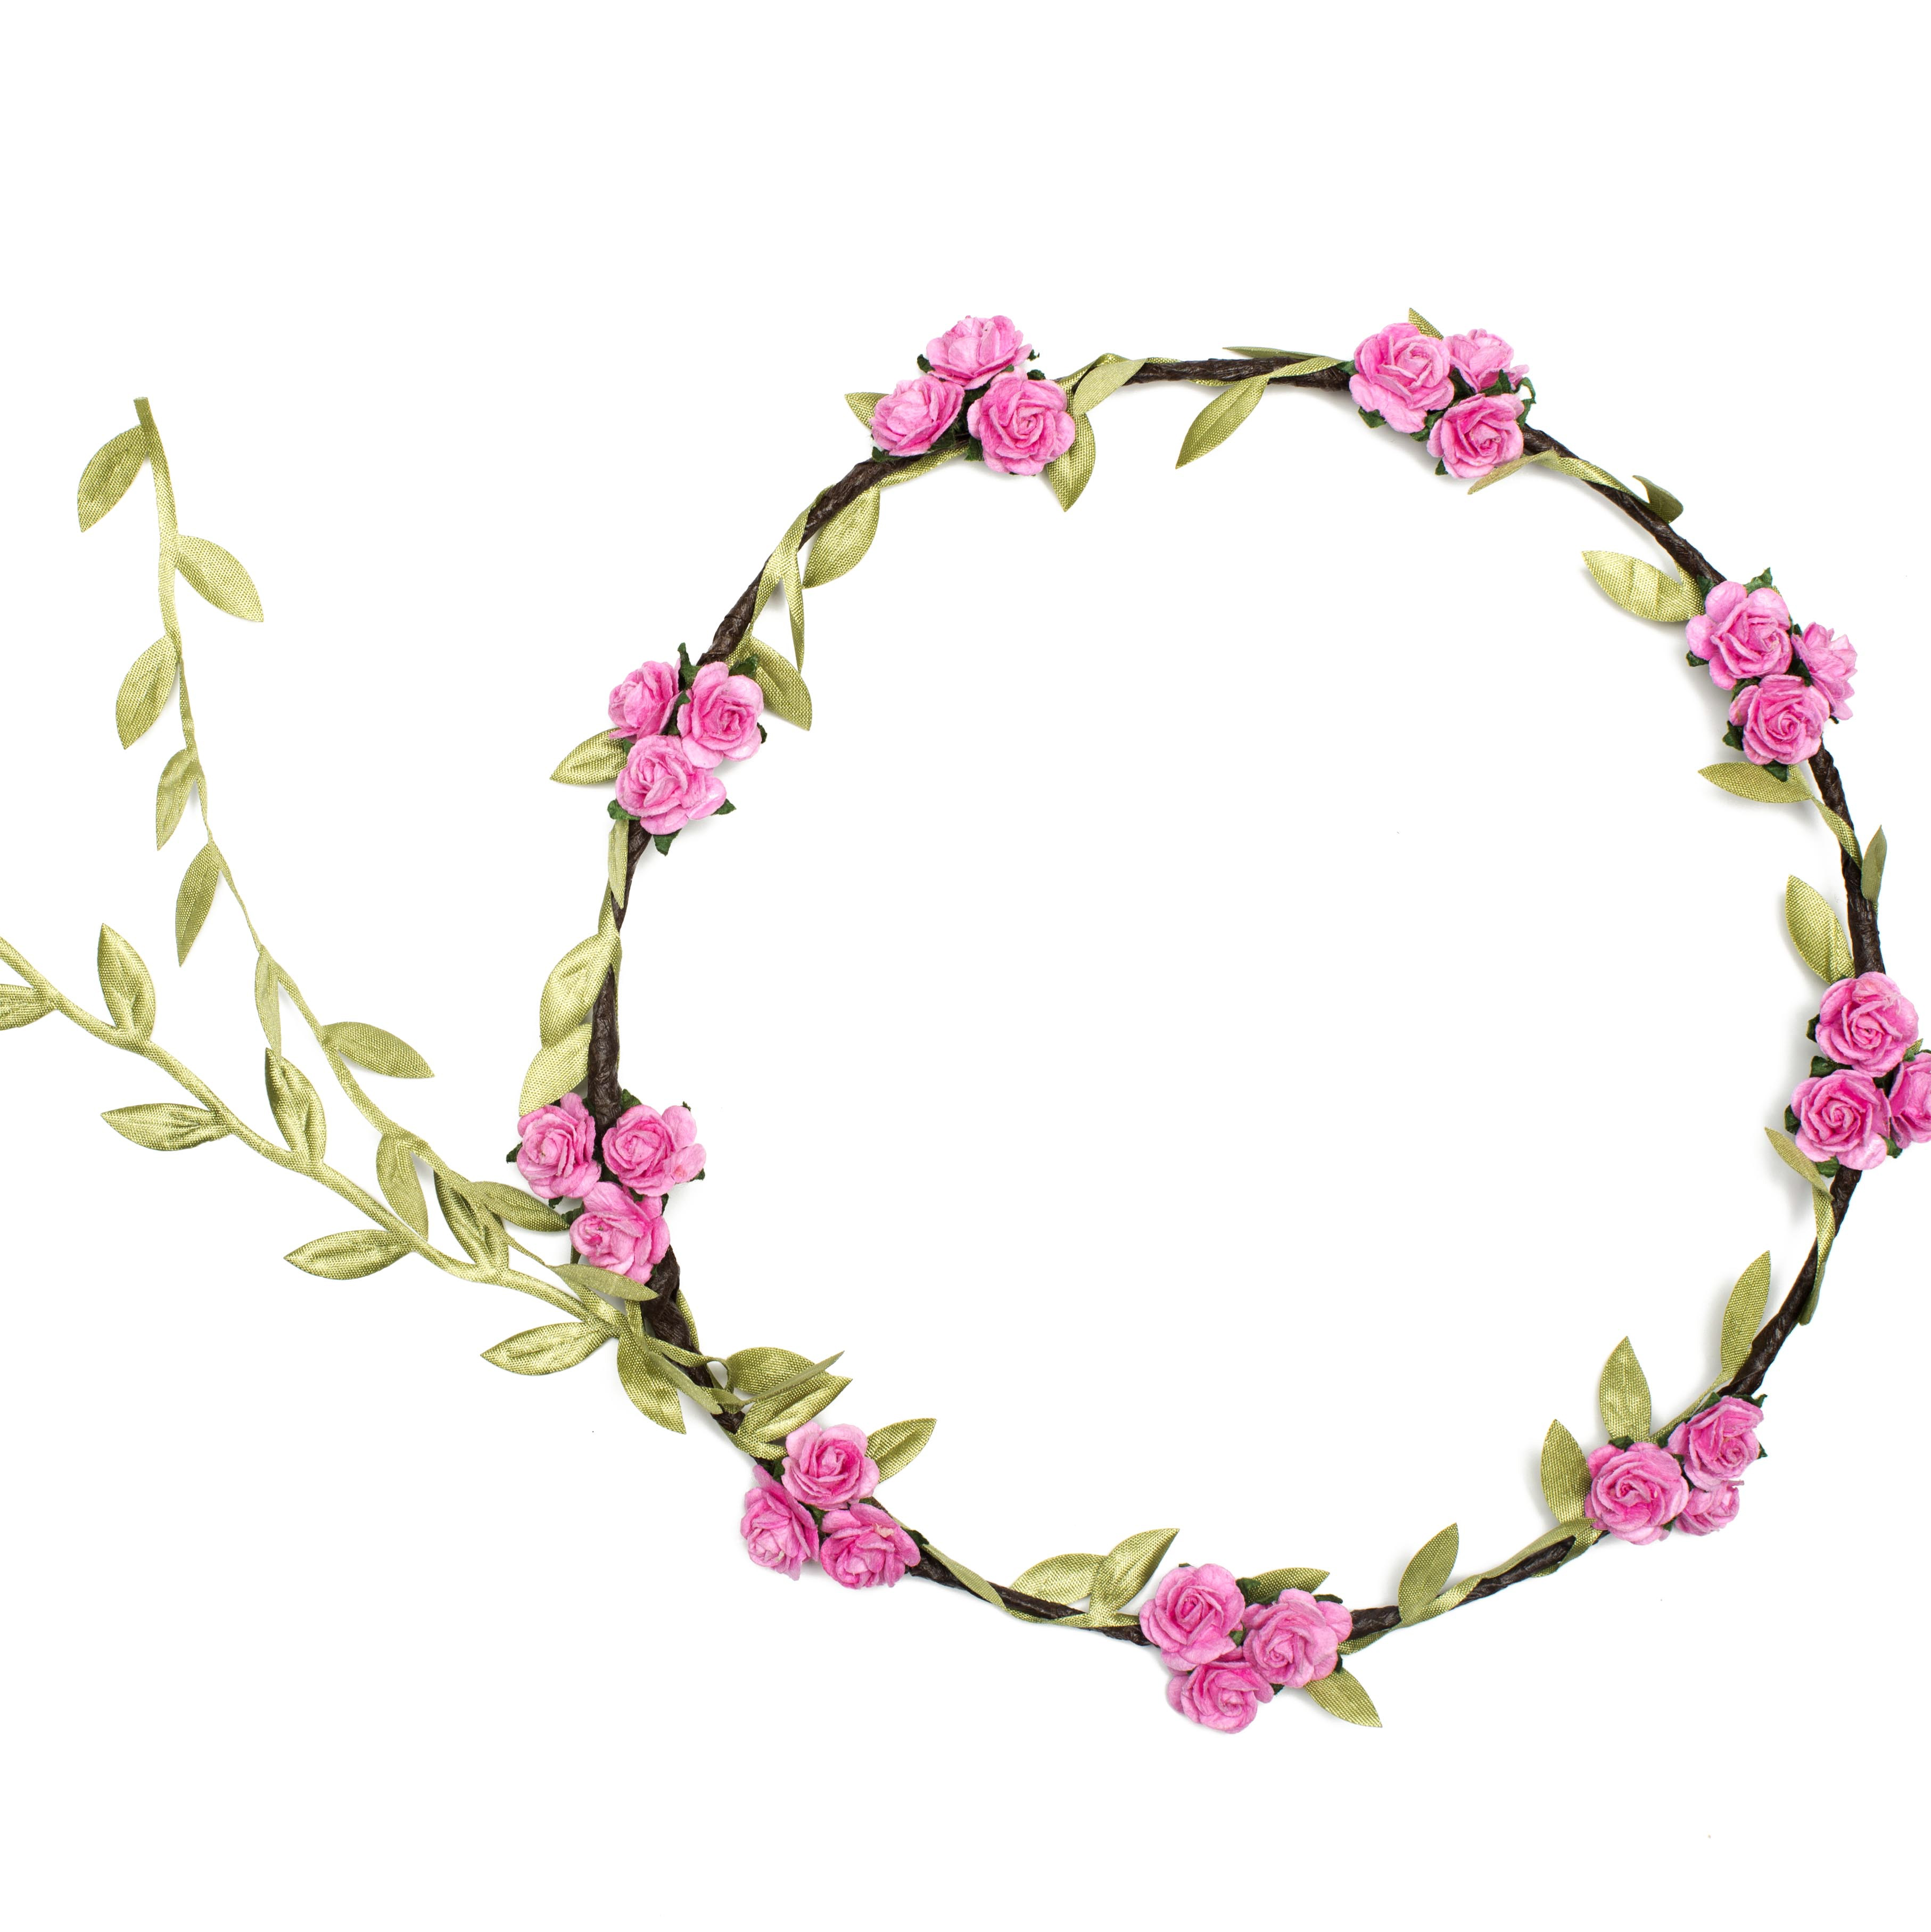 3628x3629 Crown Of Flowers Clipart